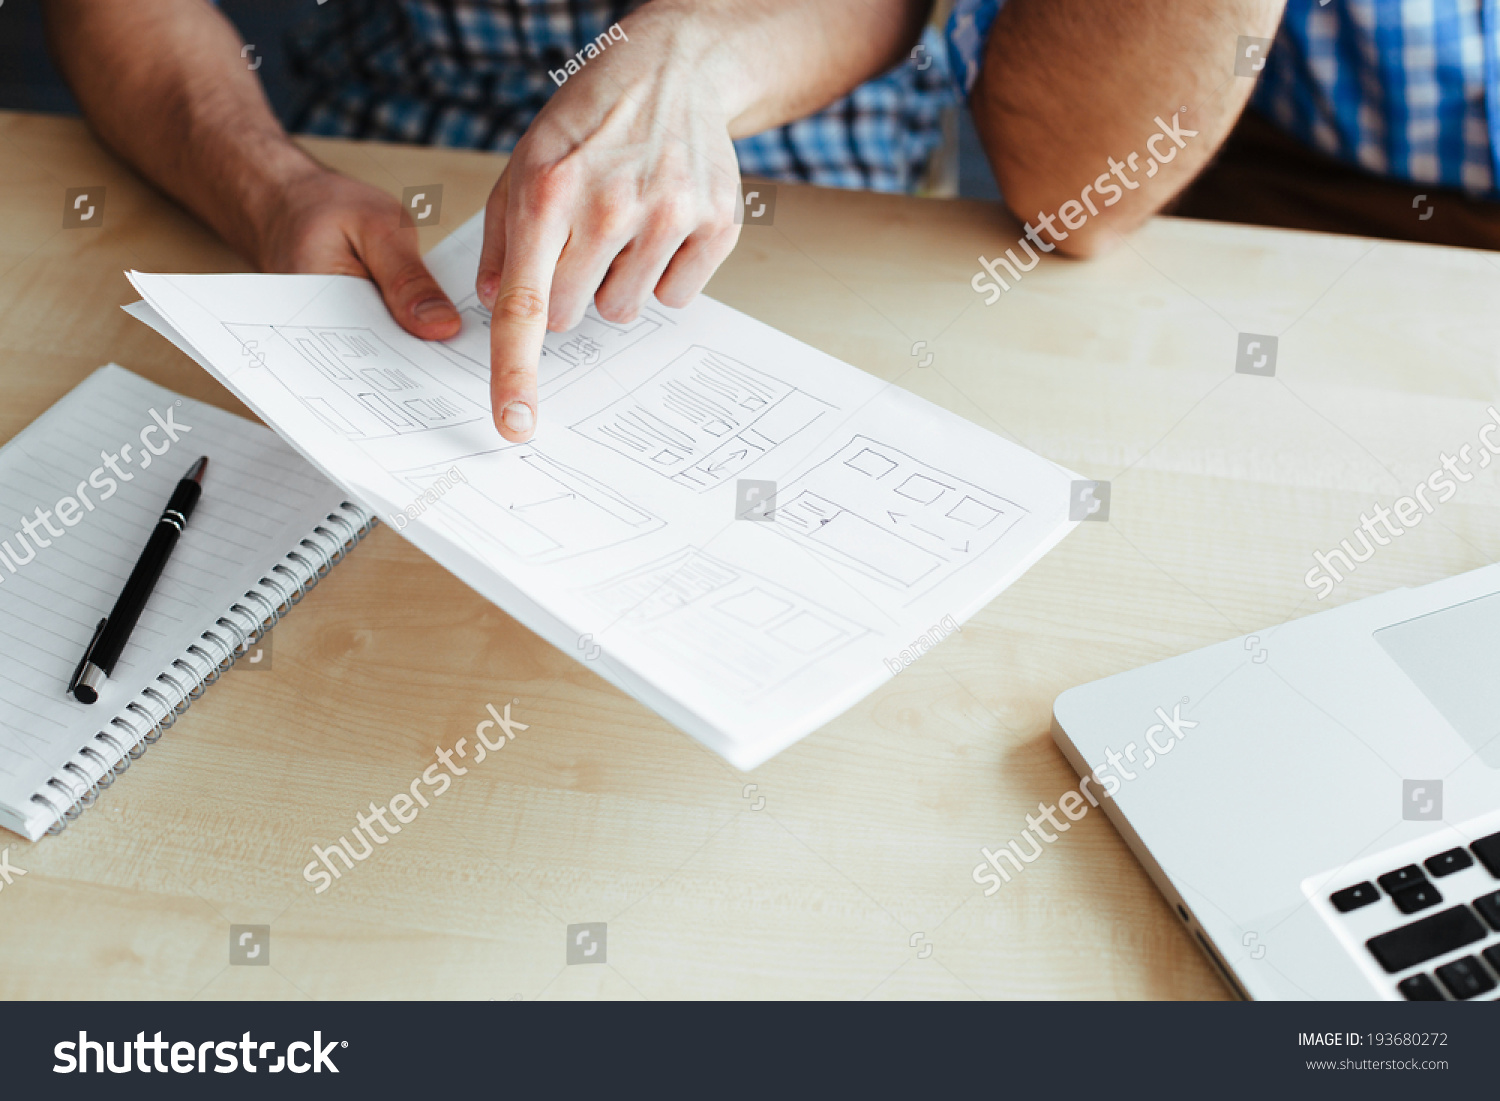 Closeup two men discussing website blueprint stock photo 193680272 close up of two men discussing a website blueprint malvernweather Image collections